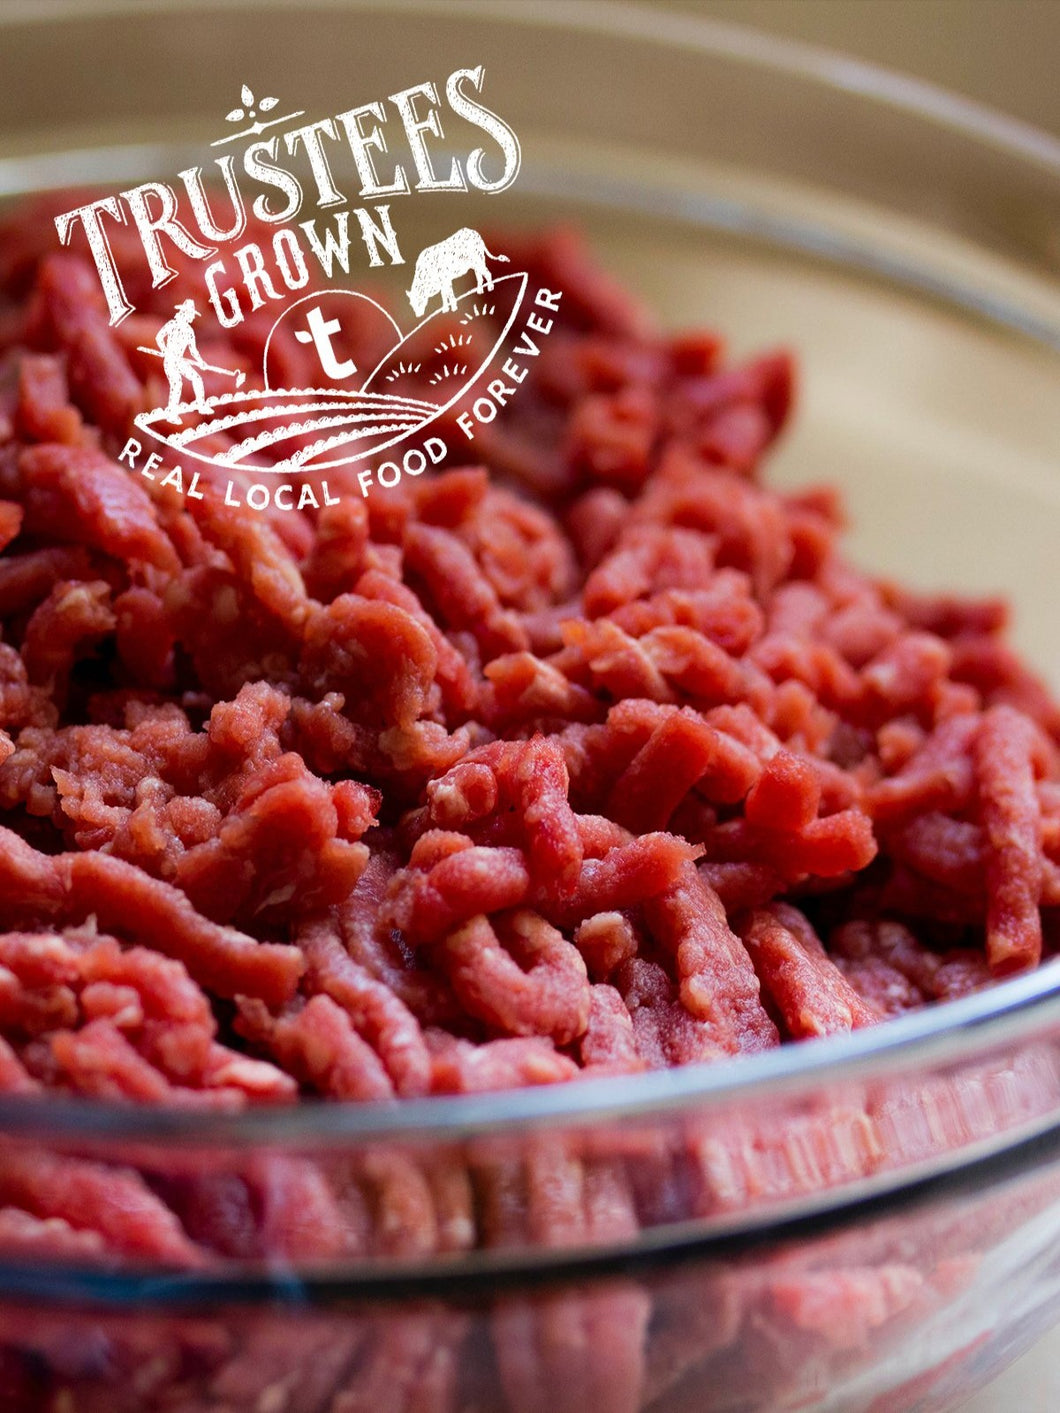 Appleton Farms Ground Beef, 100% Grass-fed & Pasture-raised (Trustees Grown)